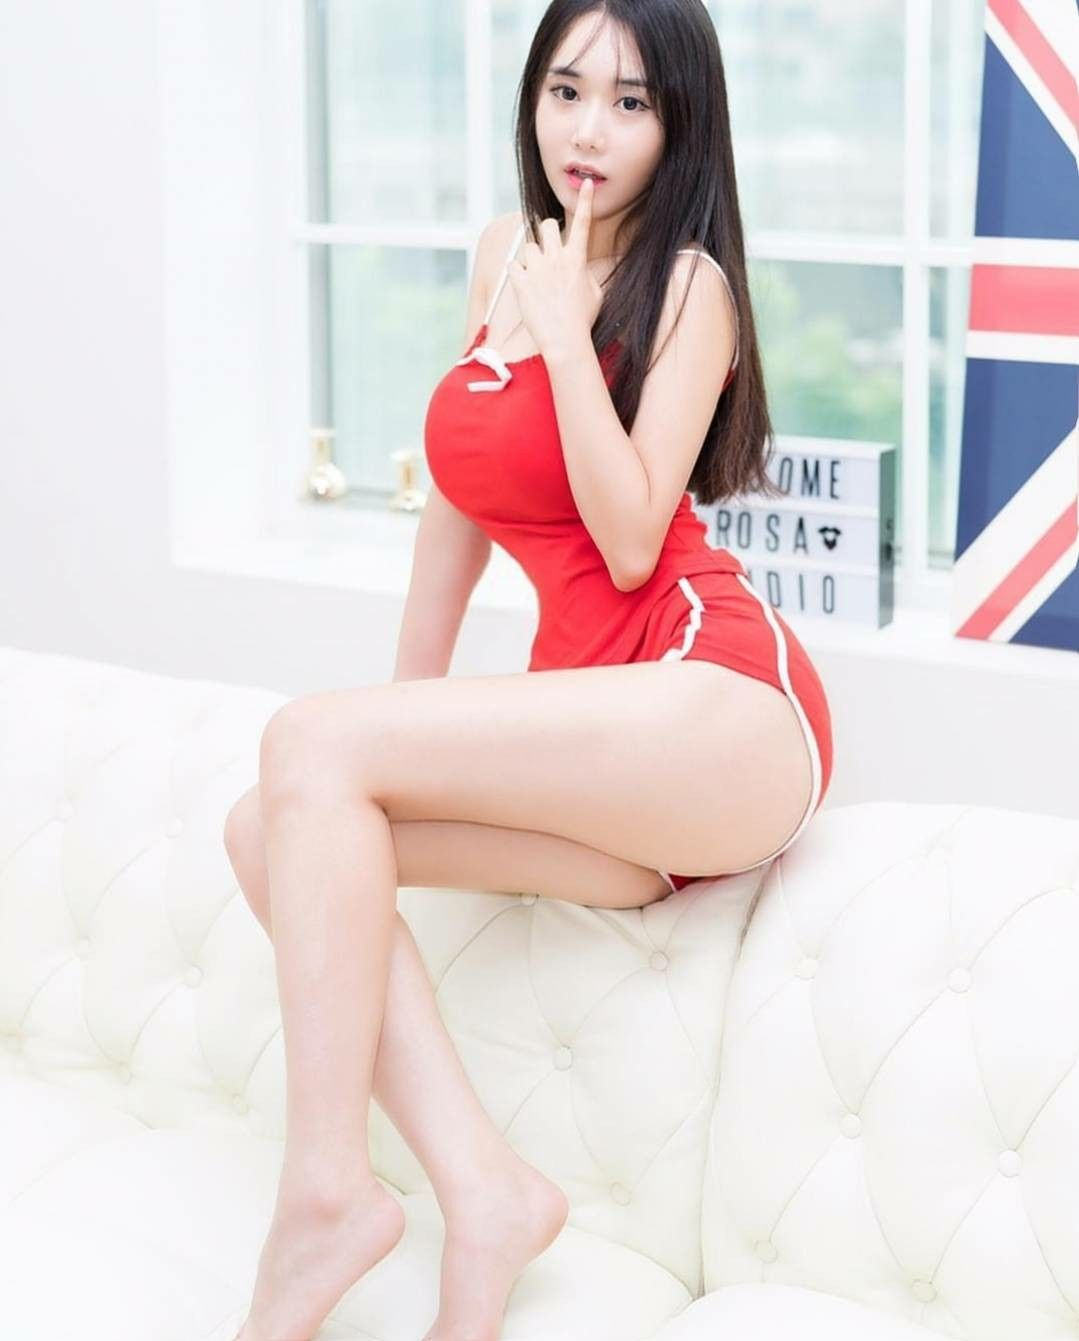 canadys asian personals Meet with energetic individuals | free love dating jihookupeinpwpnyus weott buddhist personals rising sun adult sex dating lone jack catholic single men.